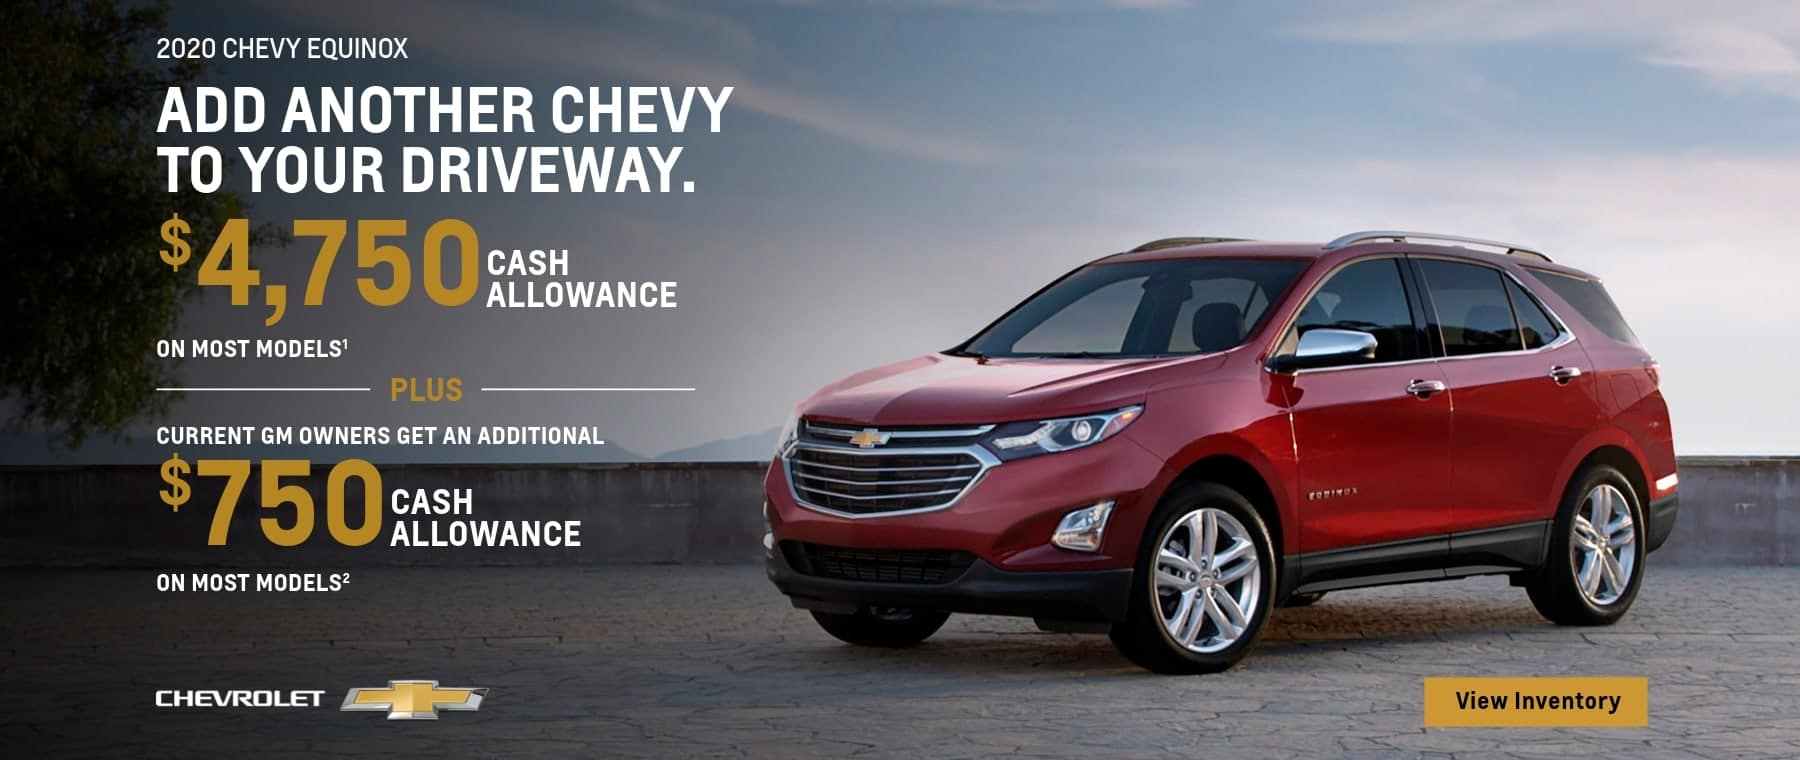 $4,750 cash allowance on most models plus current GM owners get an additional $750 cash allowance on most models.